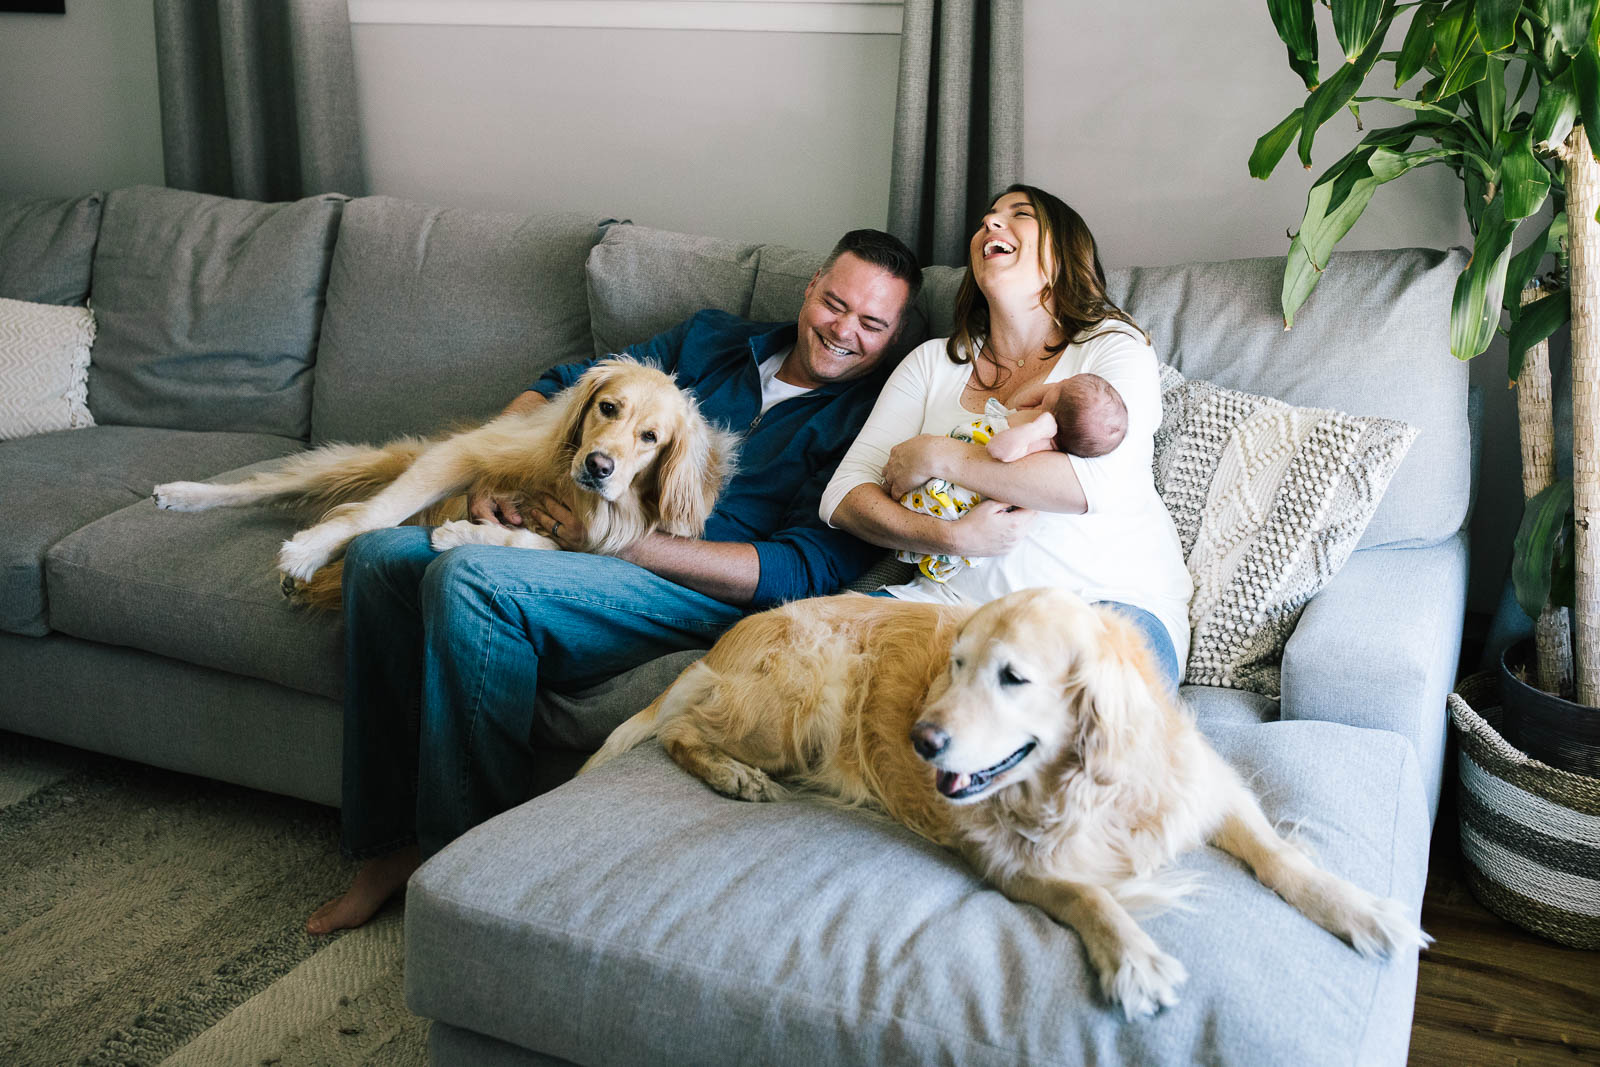 A family laughs on the sofa with their two dogs and newborn baby - How to get natural smiles in photos.